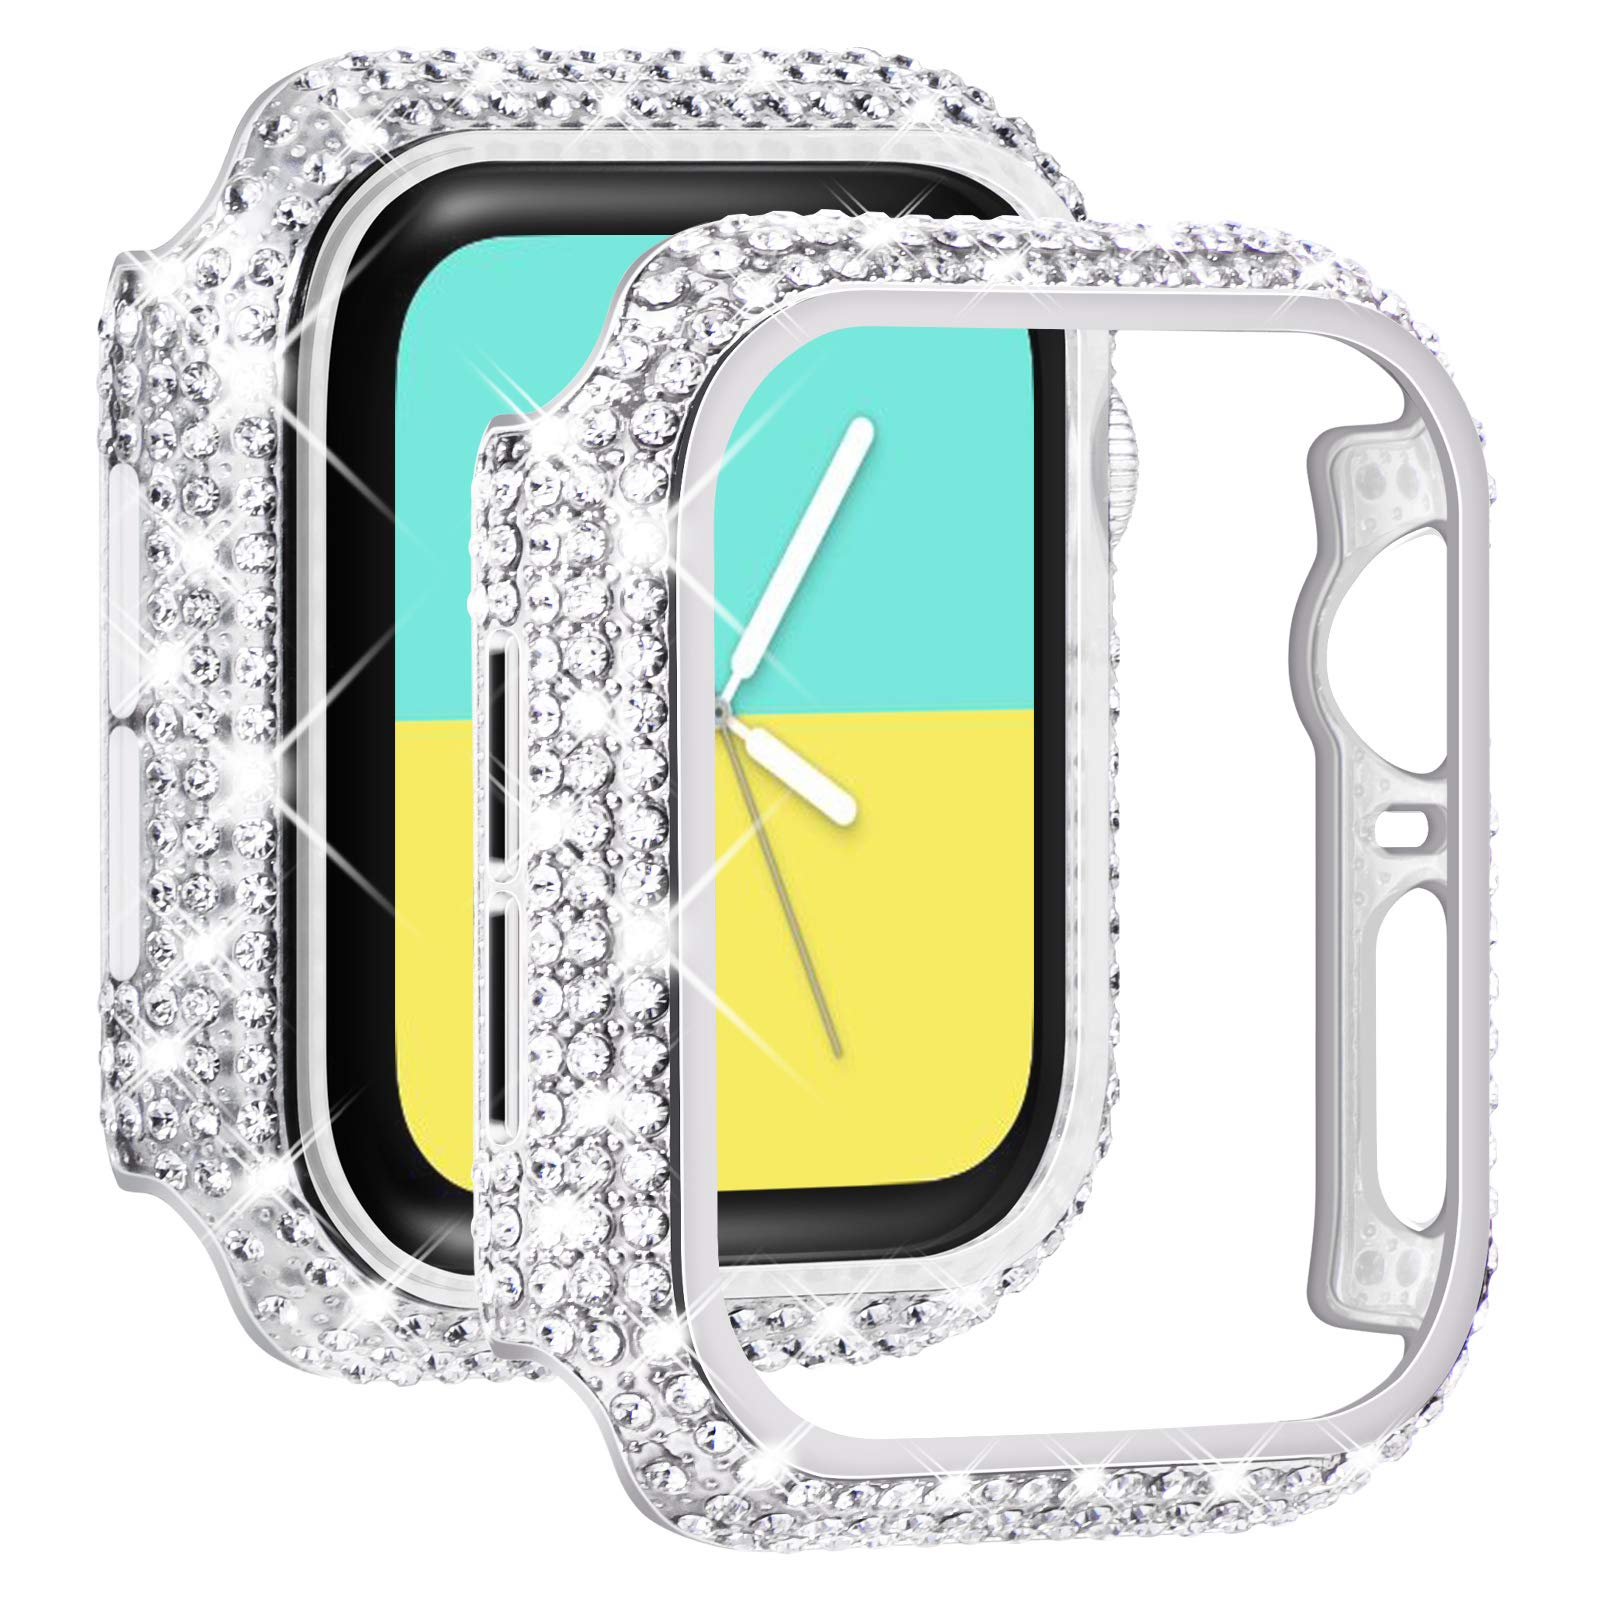 NewWays 2-Pack Bling Cases Compatible for Apple Watch Case 38mm 40mm 42mm 44mm, Fully Paved Diamonds Protective Bumper for iWatch SE Series 6 5 4 3 2 1 (40mm, Silver+Clear)